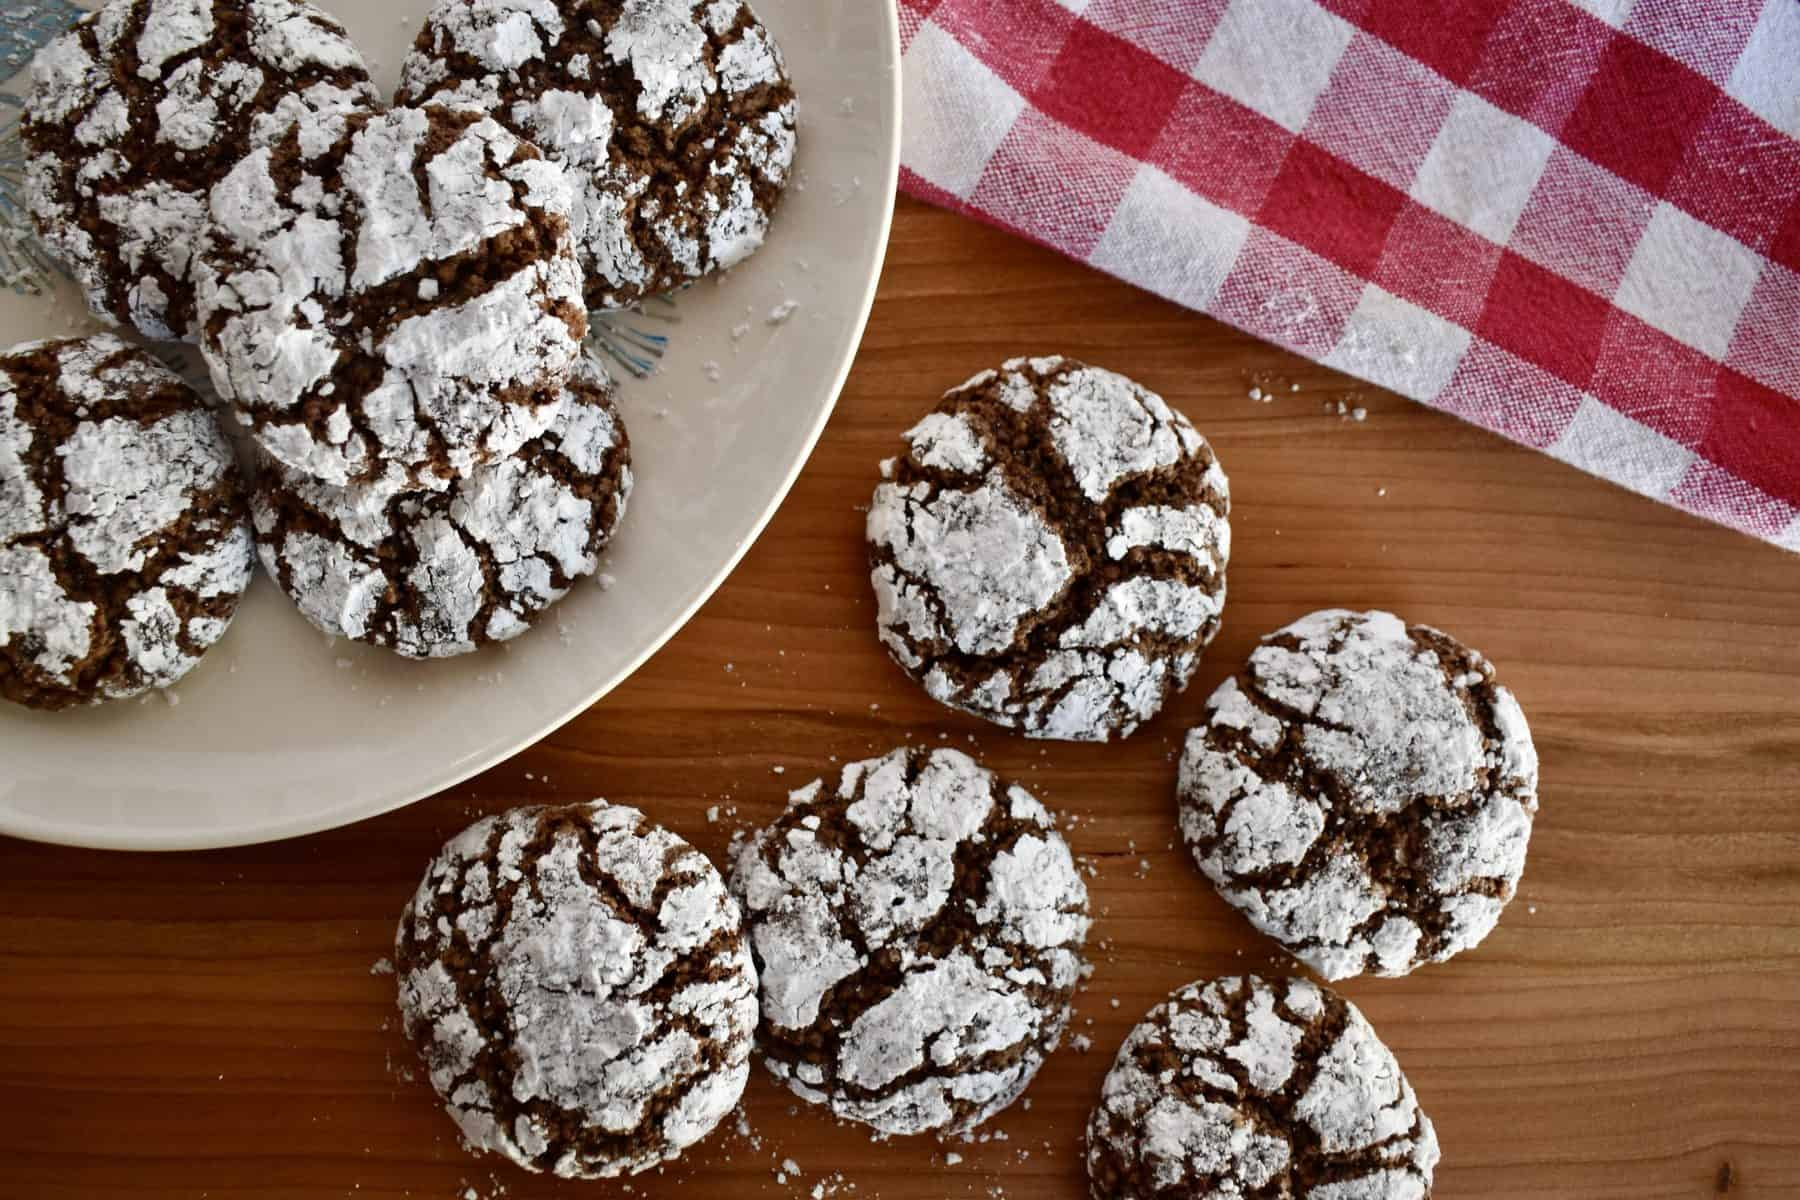 Italian Almond Chocolate Cookies on a wood cutting board with a checkered napkin.